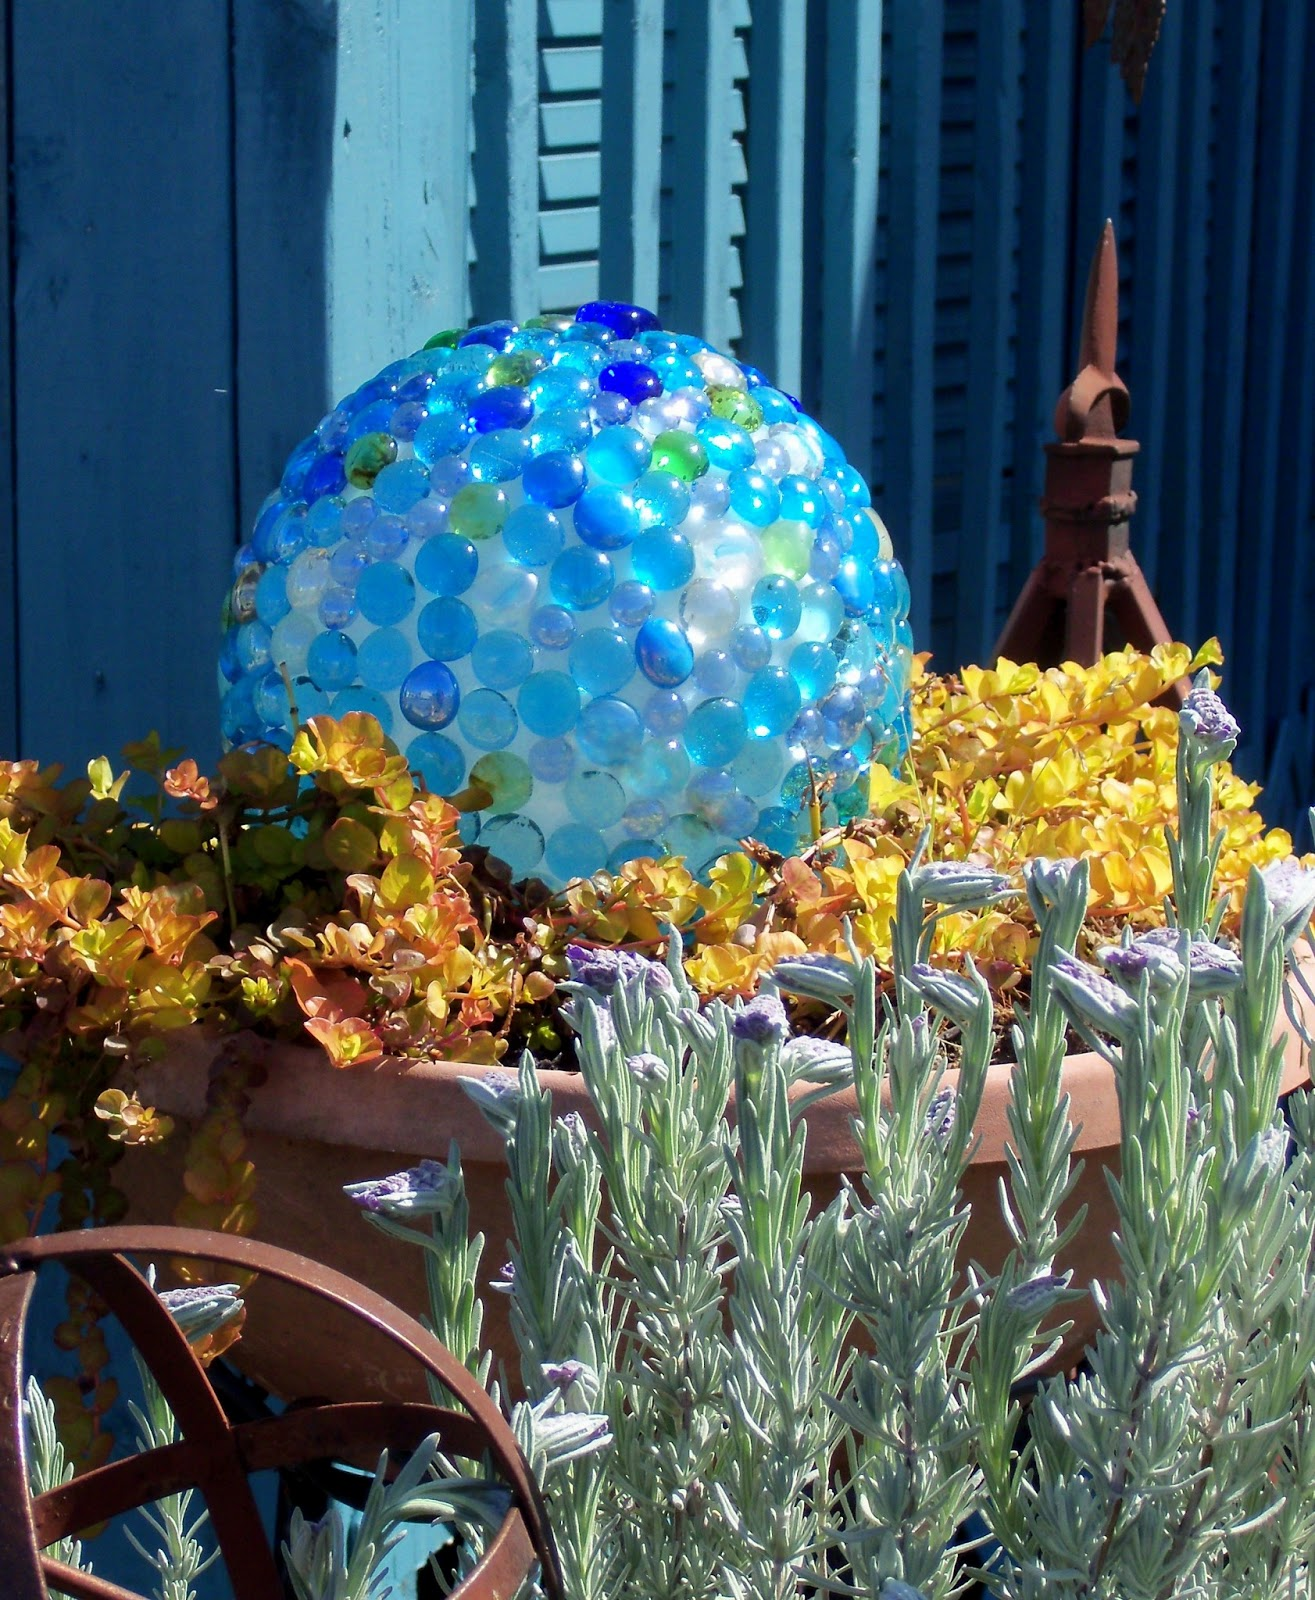 Make The Best of Things Glass Garden Balls DIY